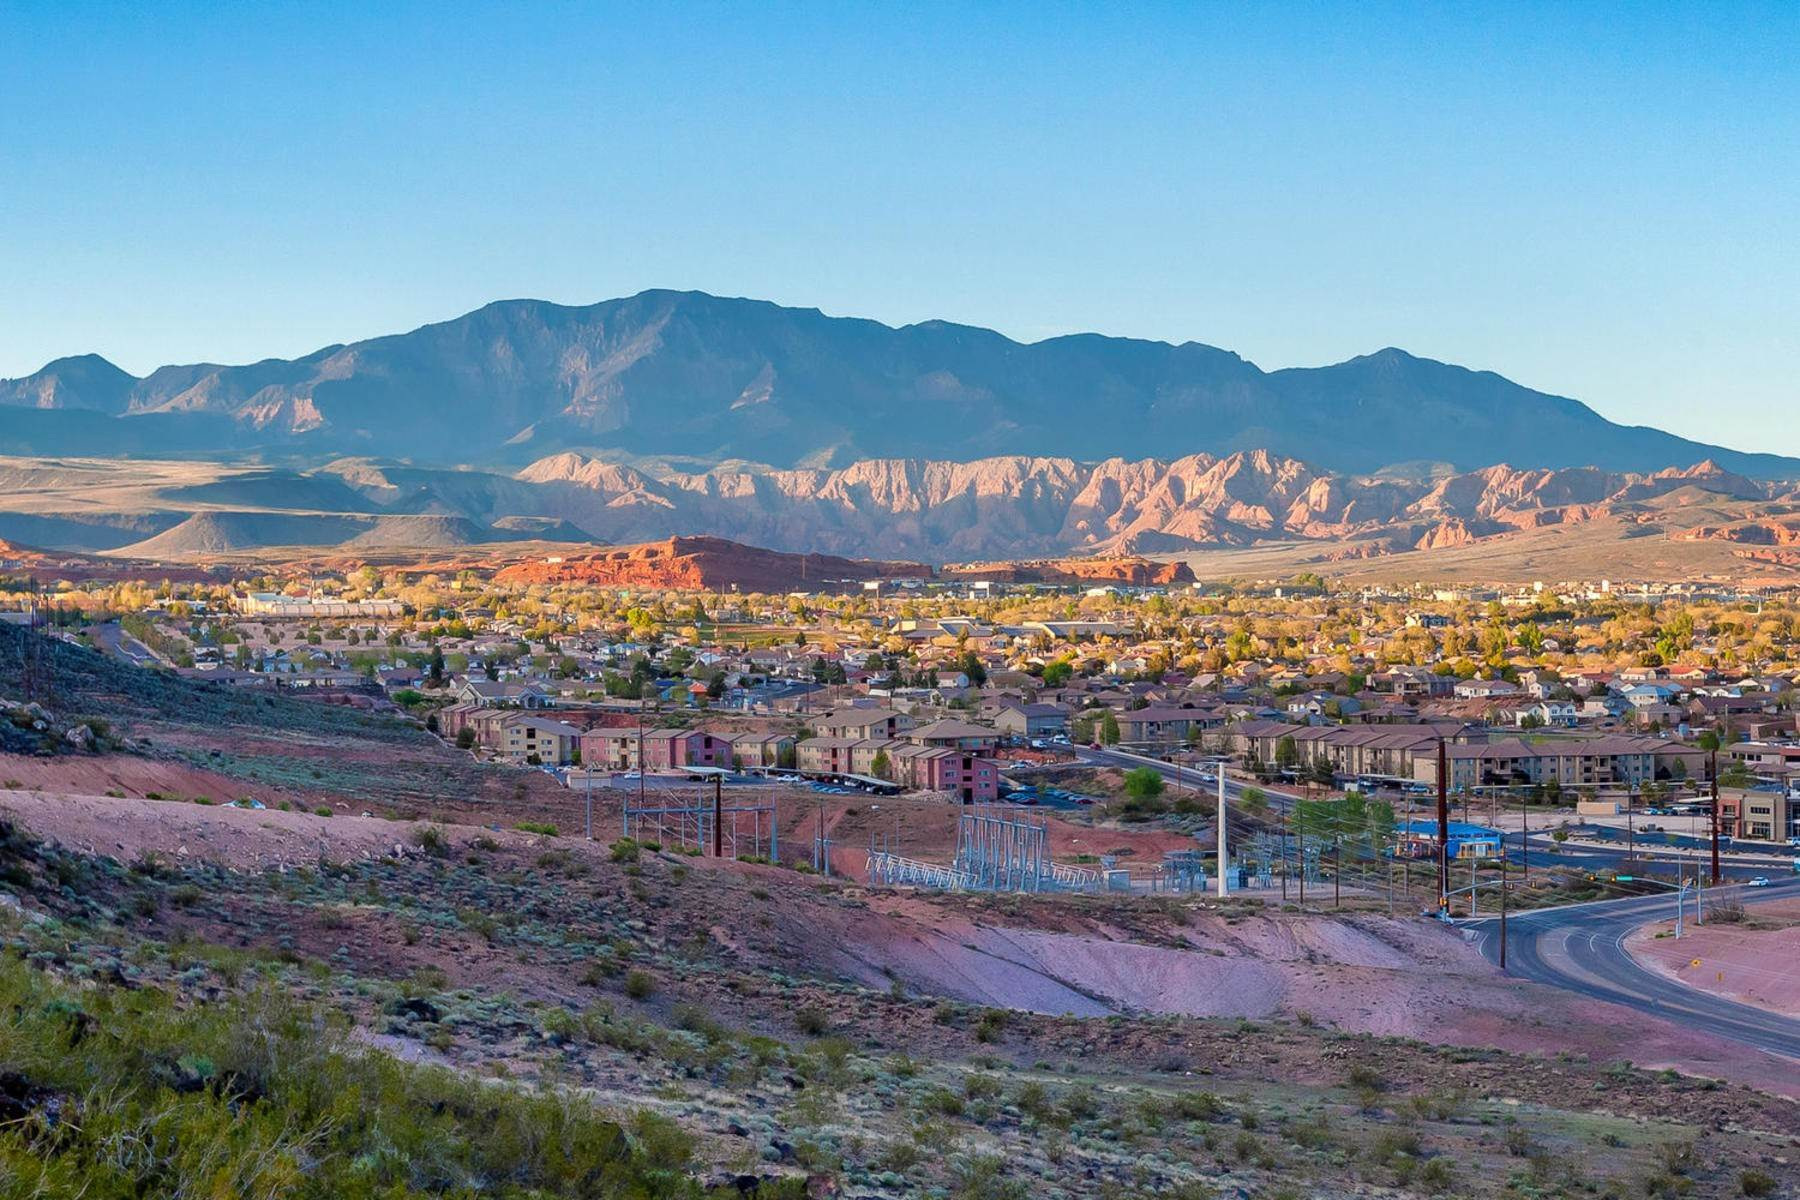 Land for Sale at Excellent Building Lot 63 East 910 Circle S, #63 St. George, Utah 84790 United States